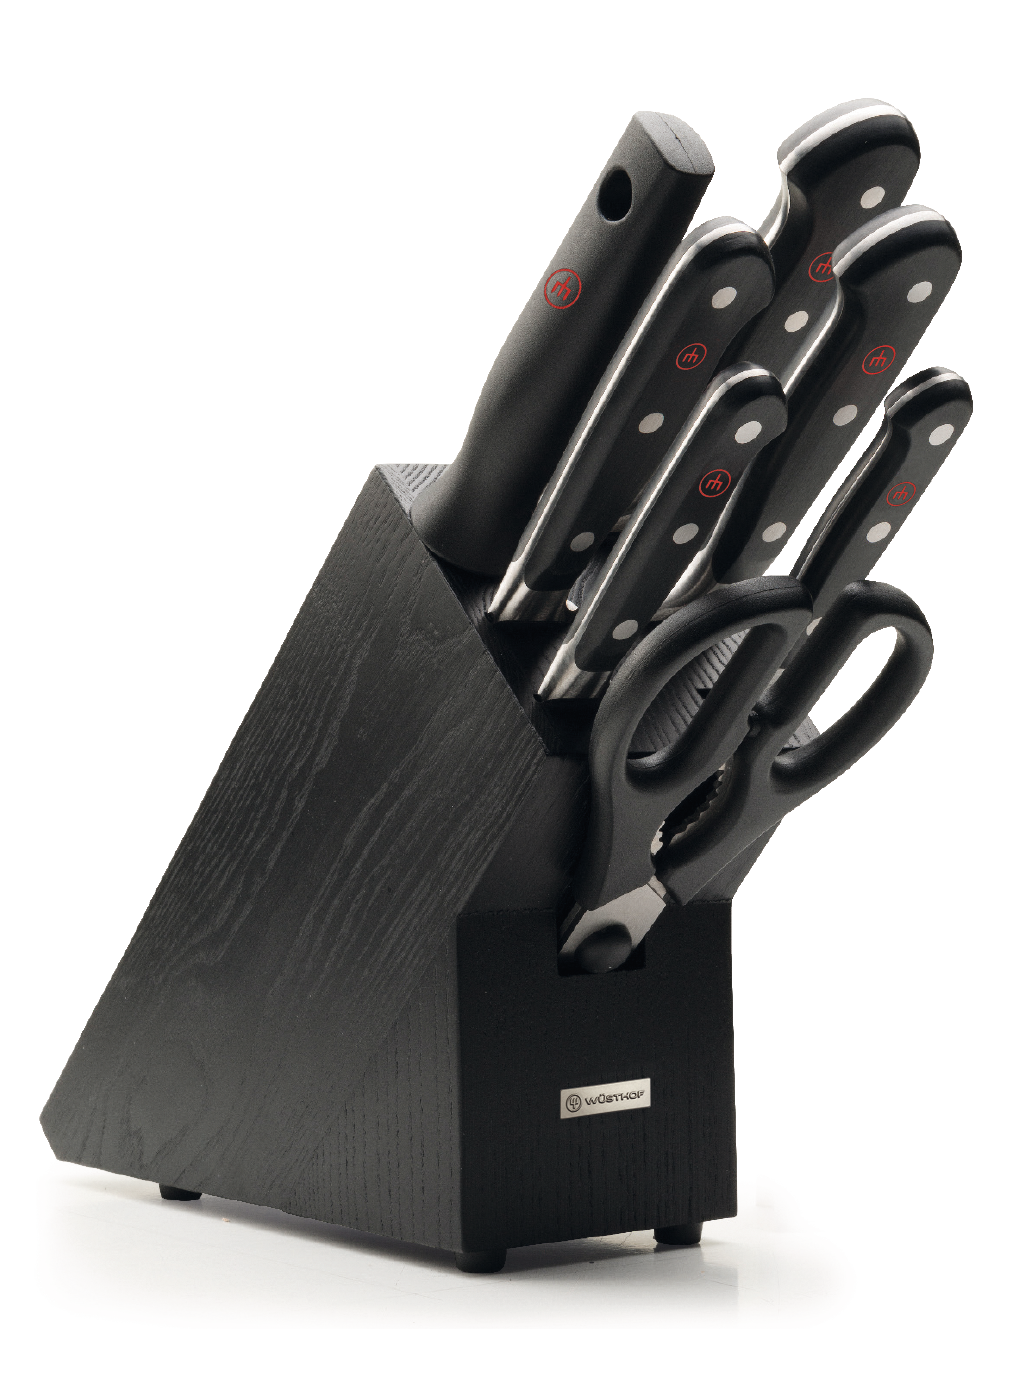 Knife block with 7 pcs.